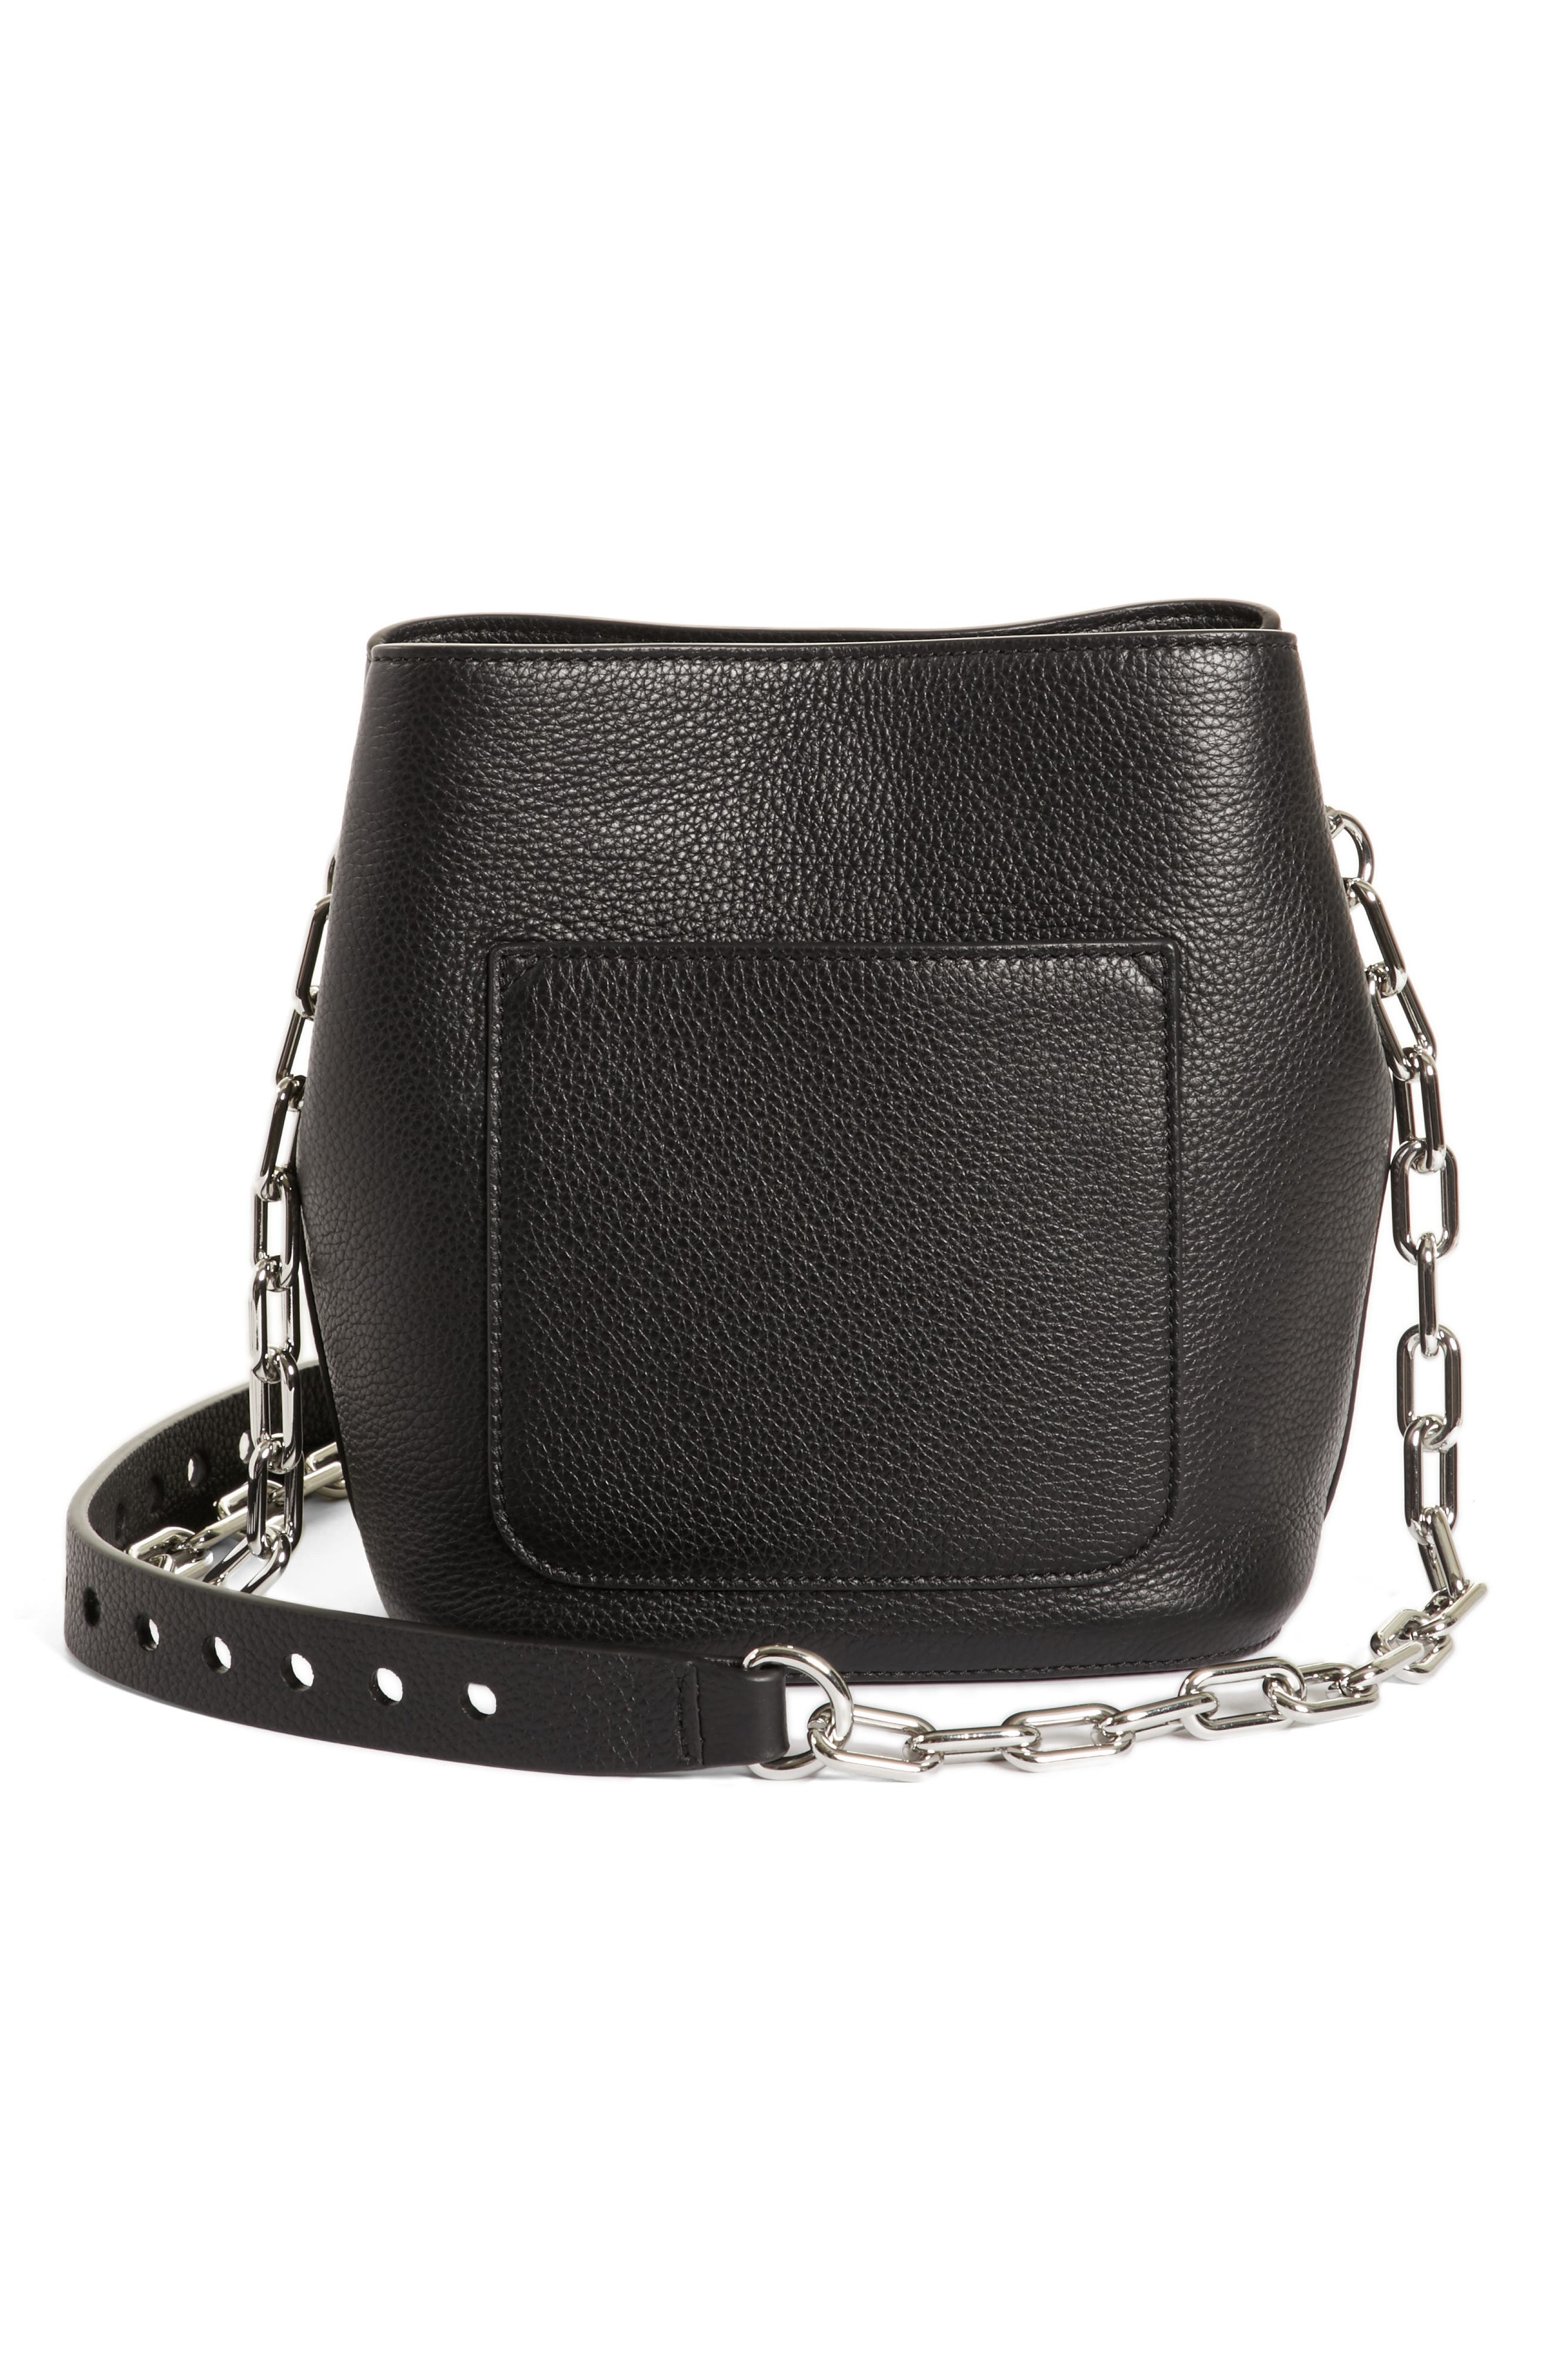 Riot Leather Crossbody Bag,                             Alternate thumbnail 3, color,                             BLACK